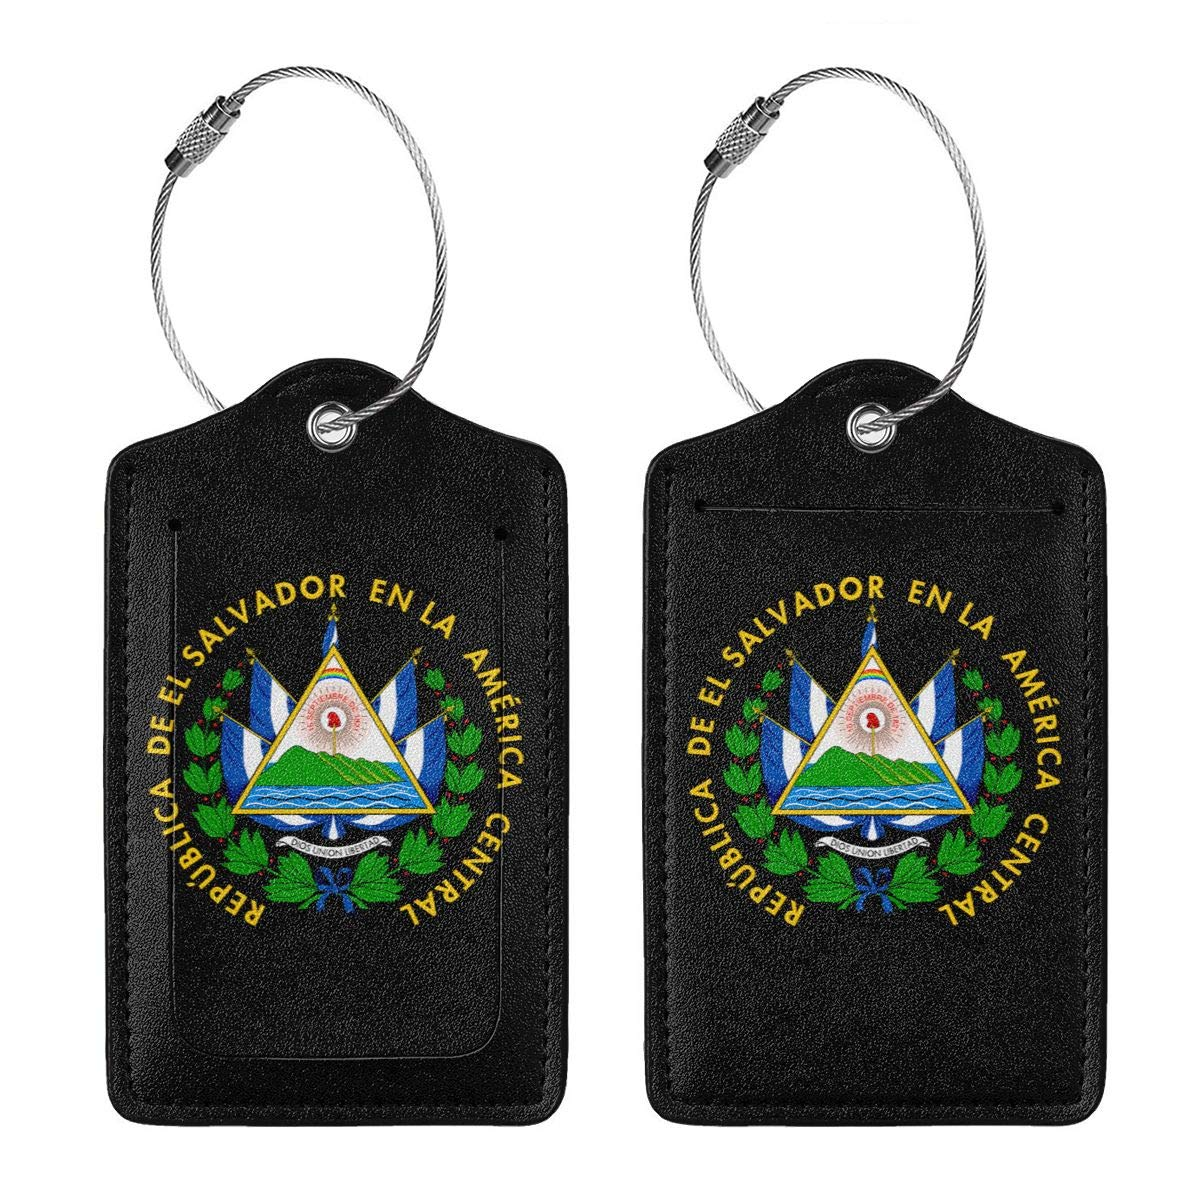 El Salvador Coat Of Arms Leather Luggage Tag Travel ID Label For Baggage Suitcase